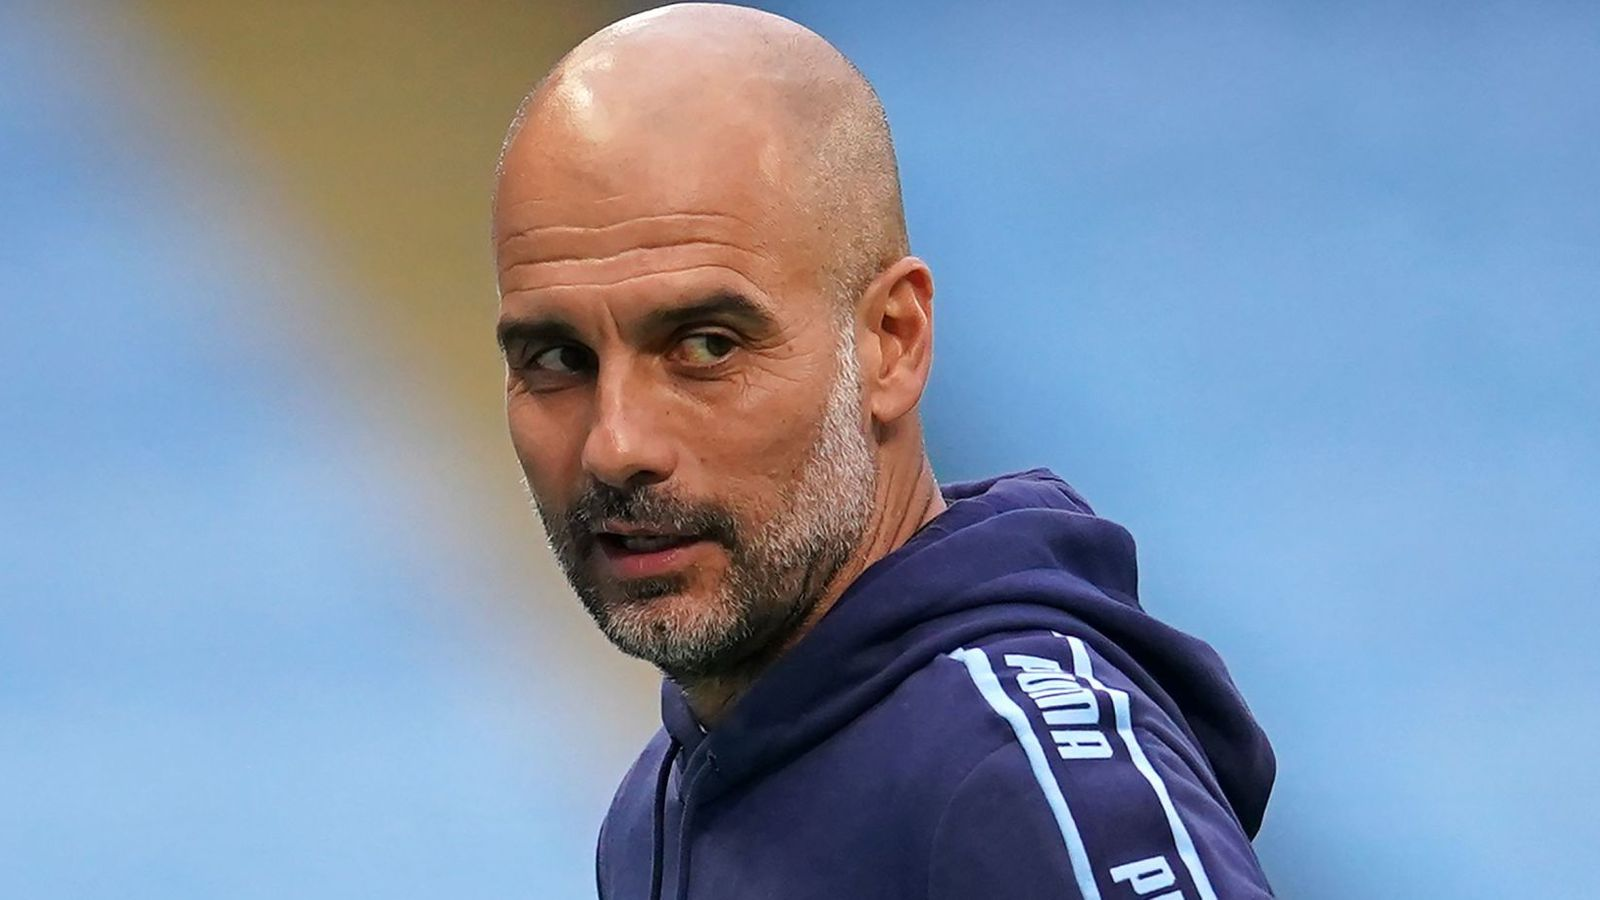 https://celebritycontent.com/2020/07/16/manchester-city-boss-pep-guardiola-says-jurgen-klopp-and-jose-mourinho-can-call-him-to-discuss-ffp-ruling-football-news-sky-sports/